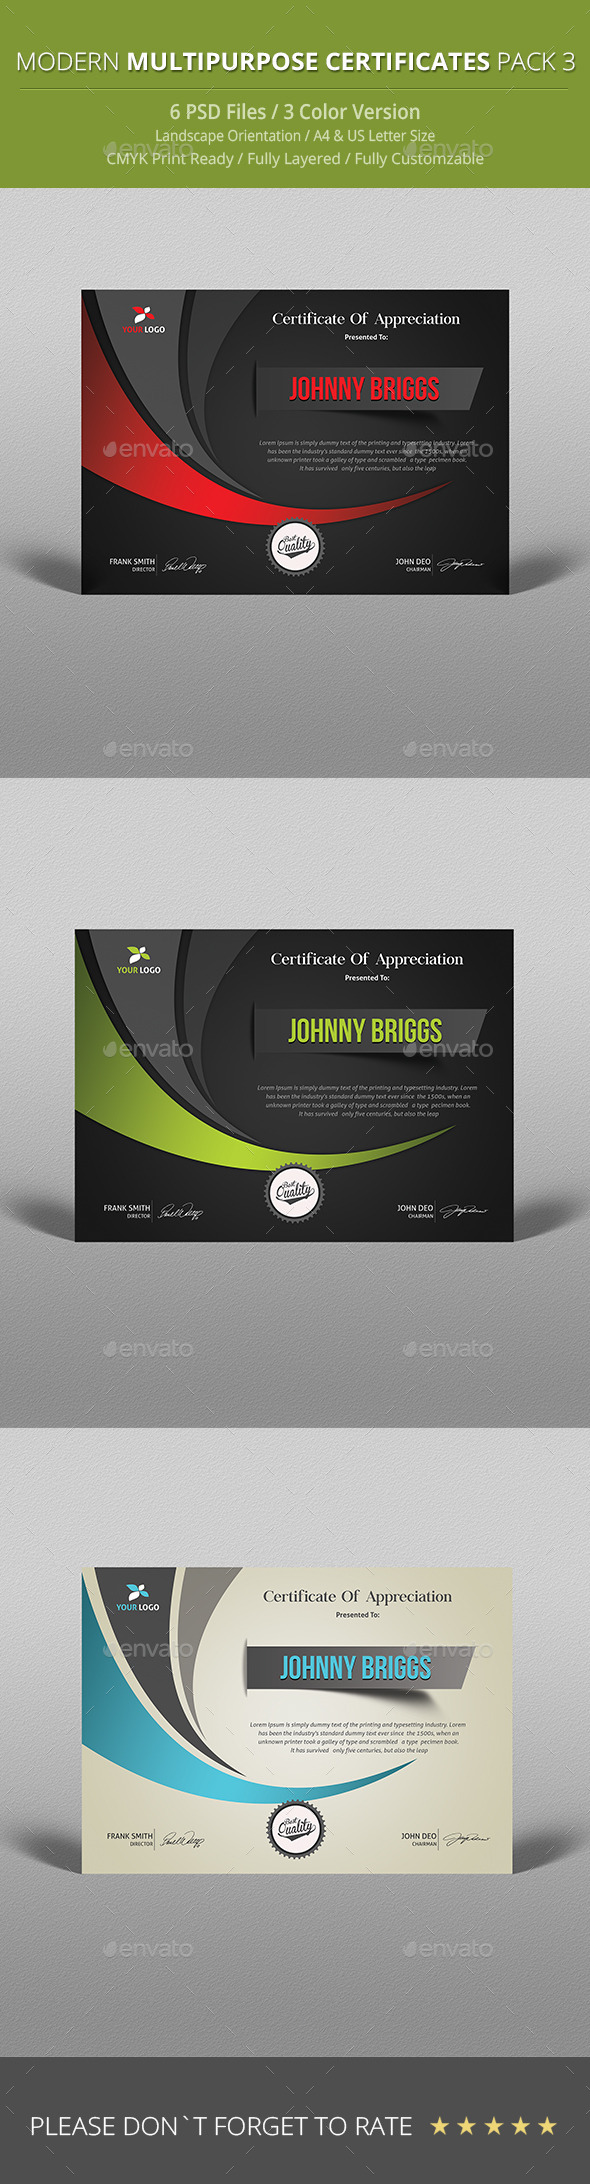 GraphicRiver Modern Multipurpose Certificate Pack 3 9917265